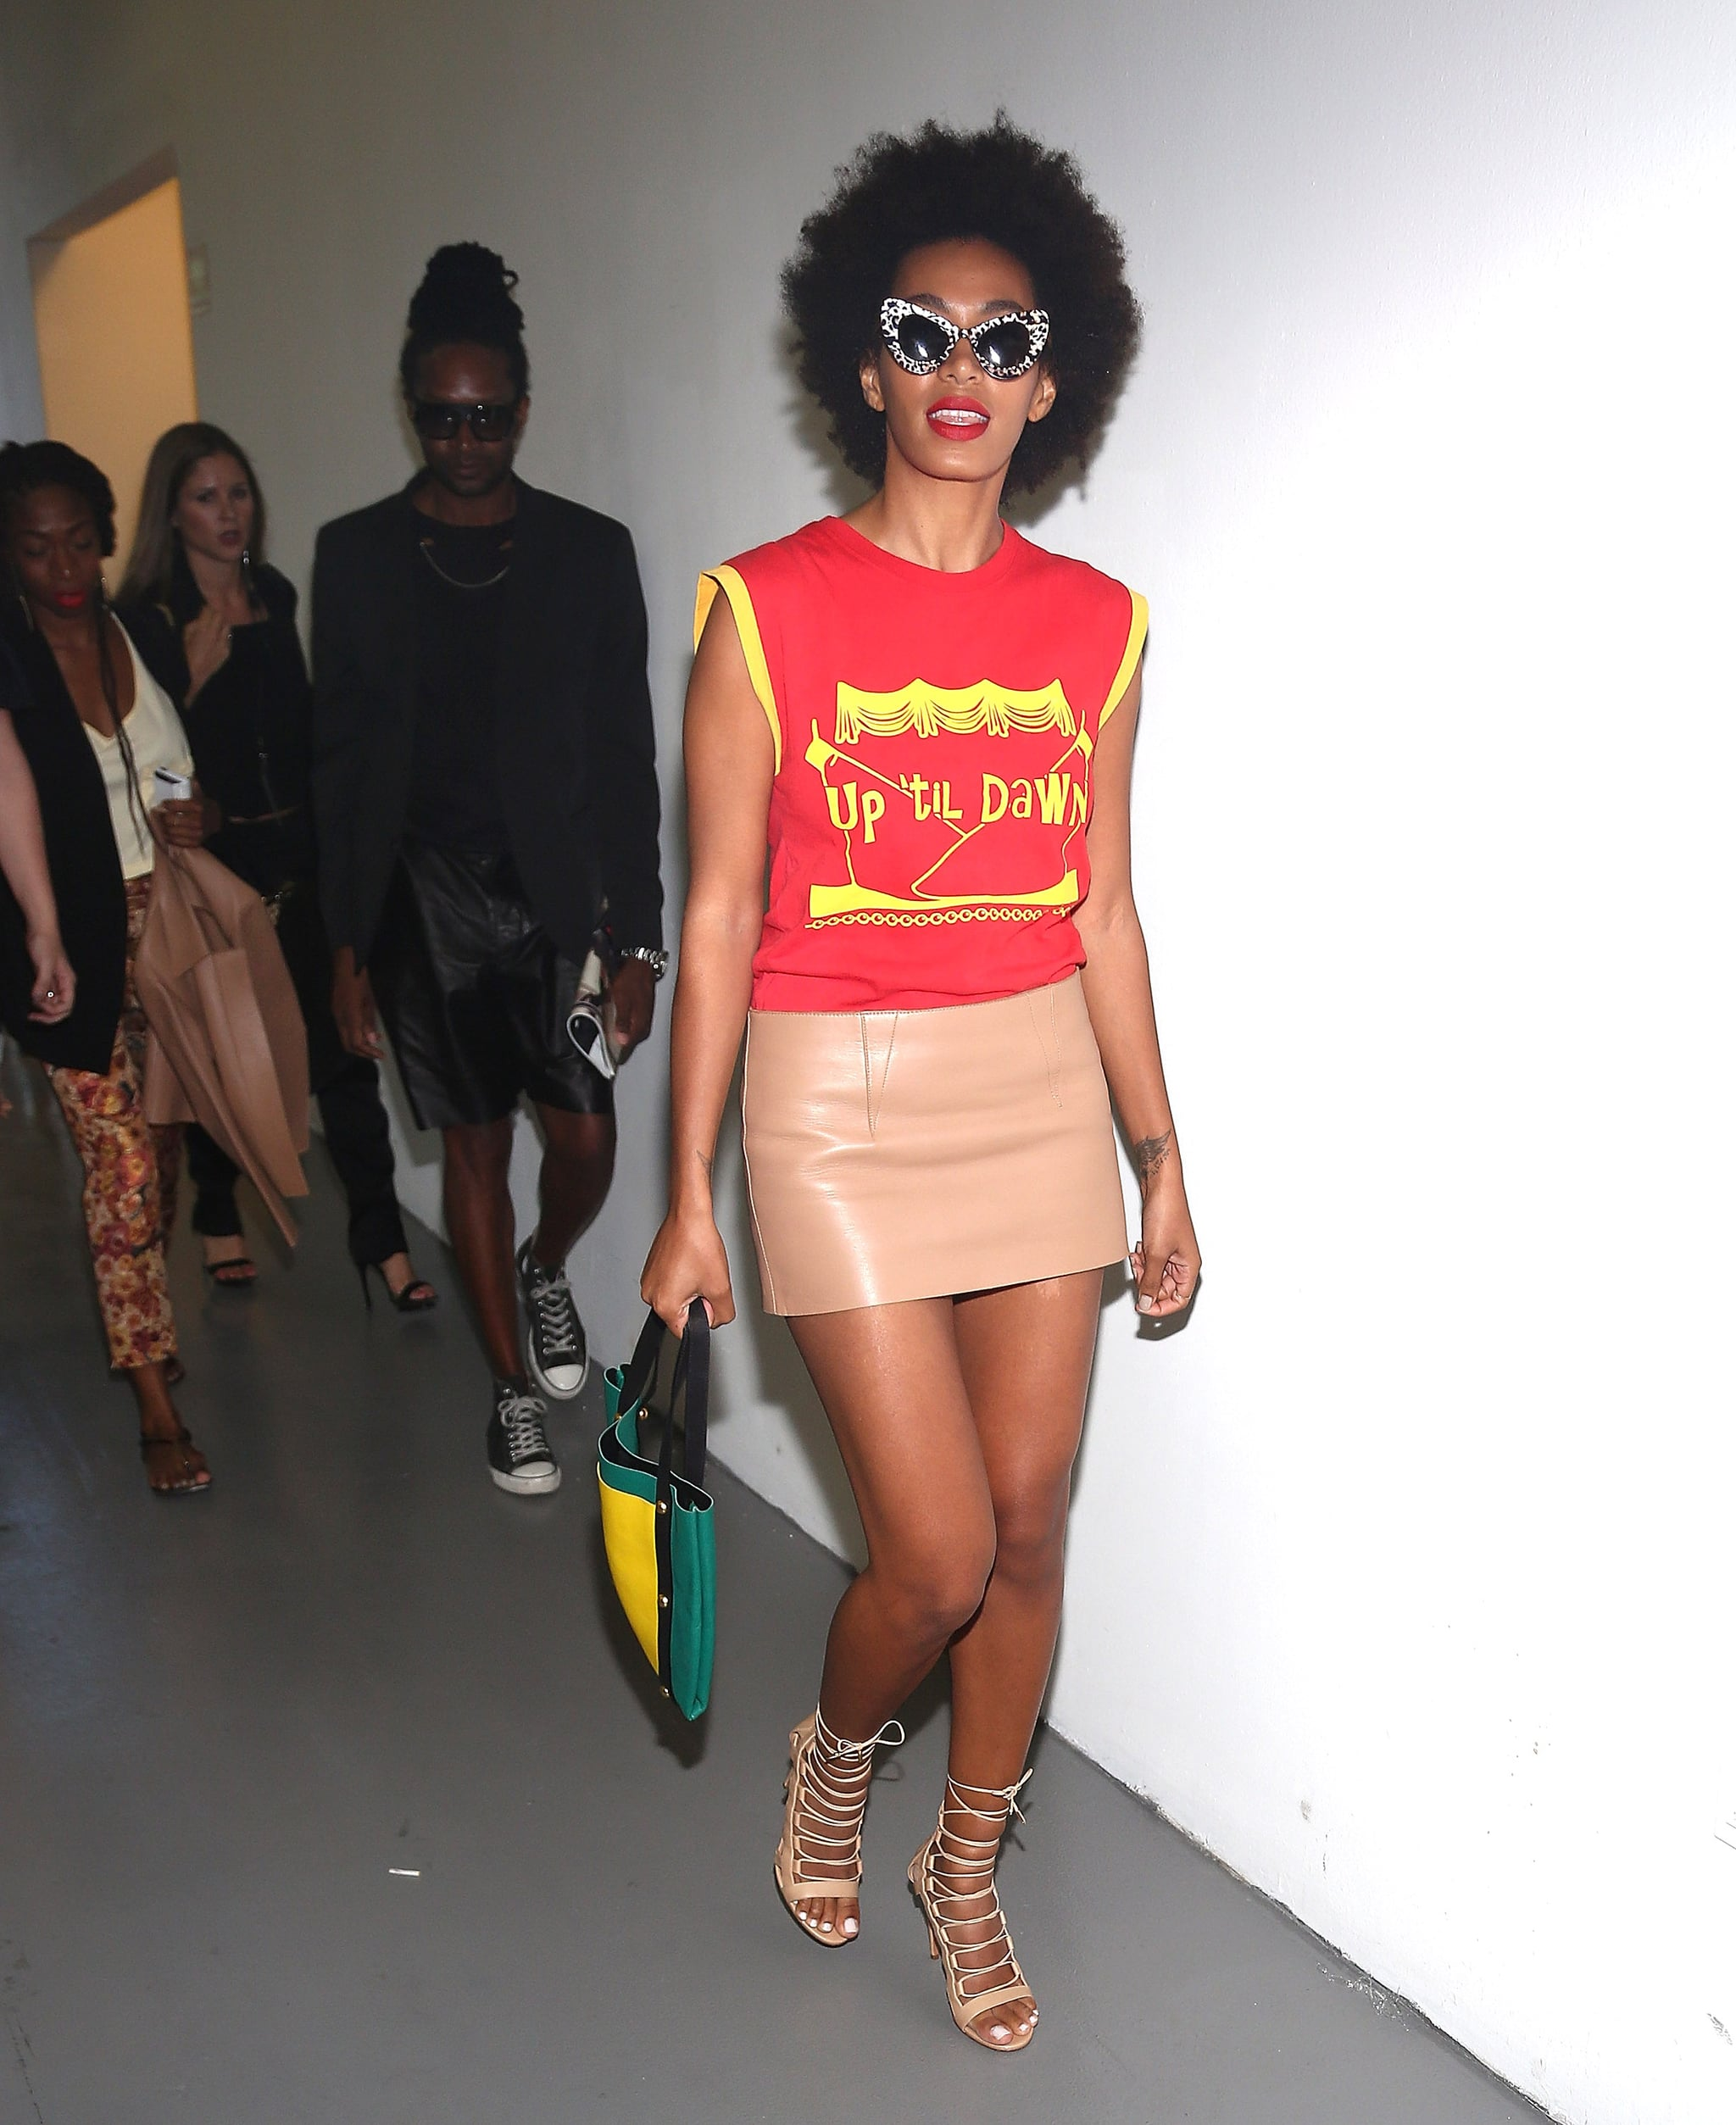 Solange Knowles arrived to Alexander Wang in a bright red-and-yellow graphic top, which she tempered with a nude leather skirt. But we can't forget about the accessories! Get a load of her Zac Posen x Illesteva sunglasses and shoes.